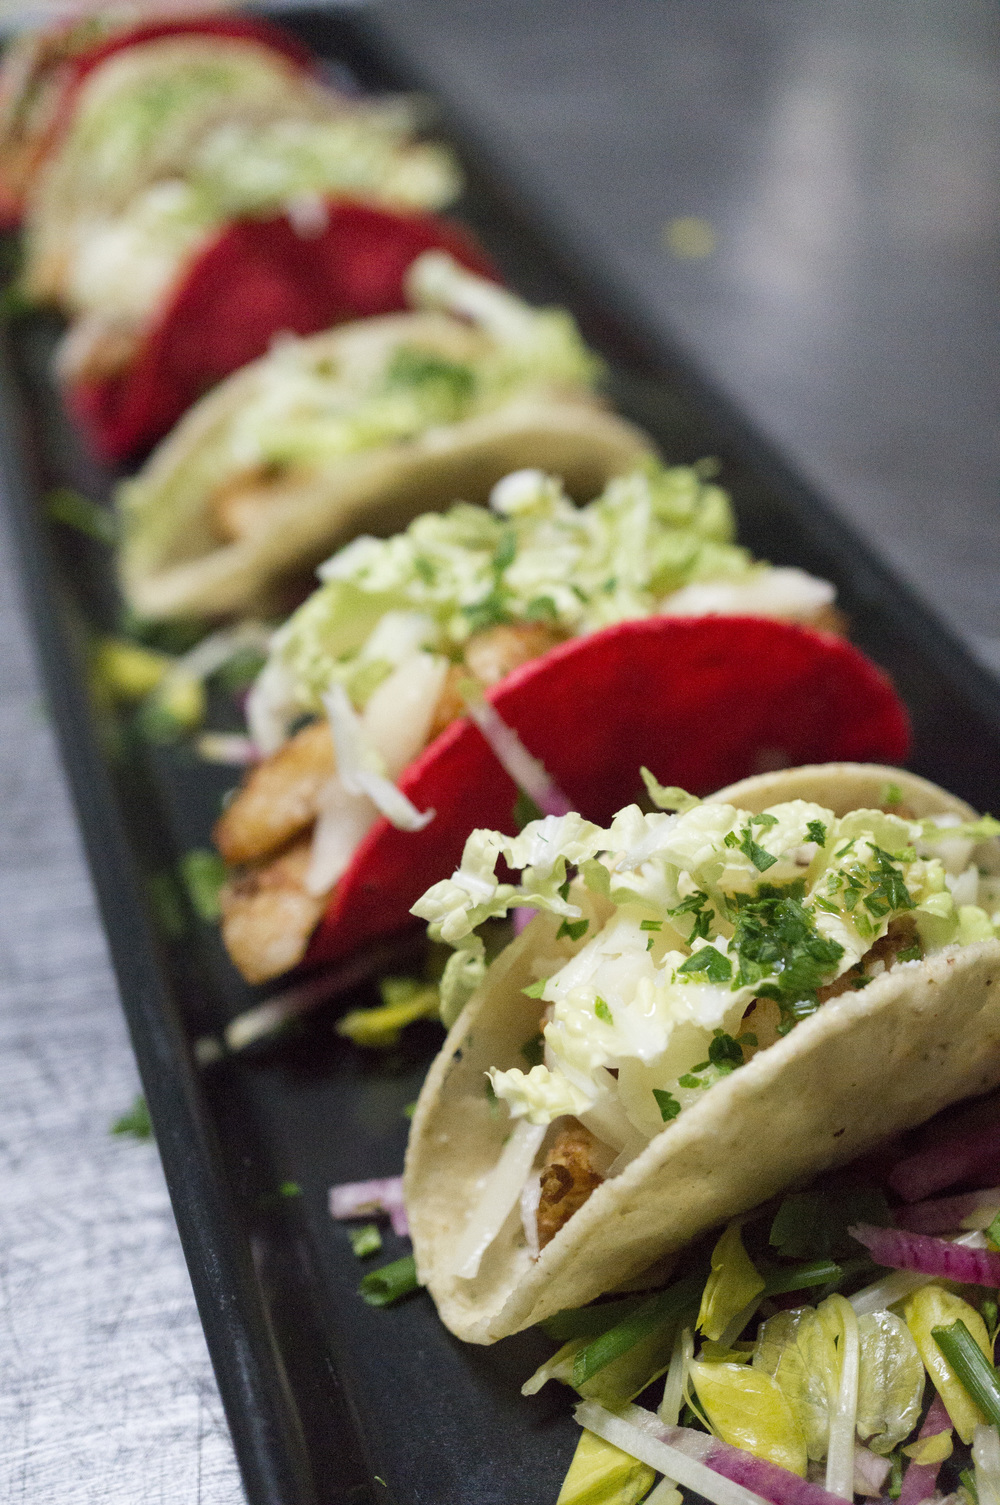 20151201 tasting Corvina Fish Tacos with Cilantro, Cotija Cheese & Pickled Onions 9788.jpg